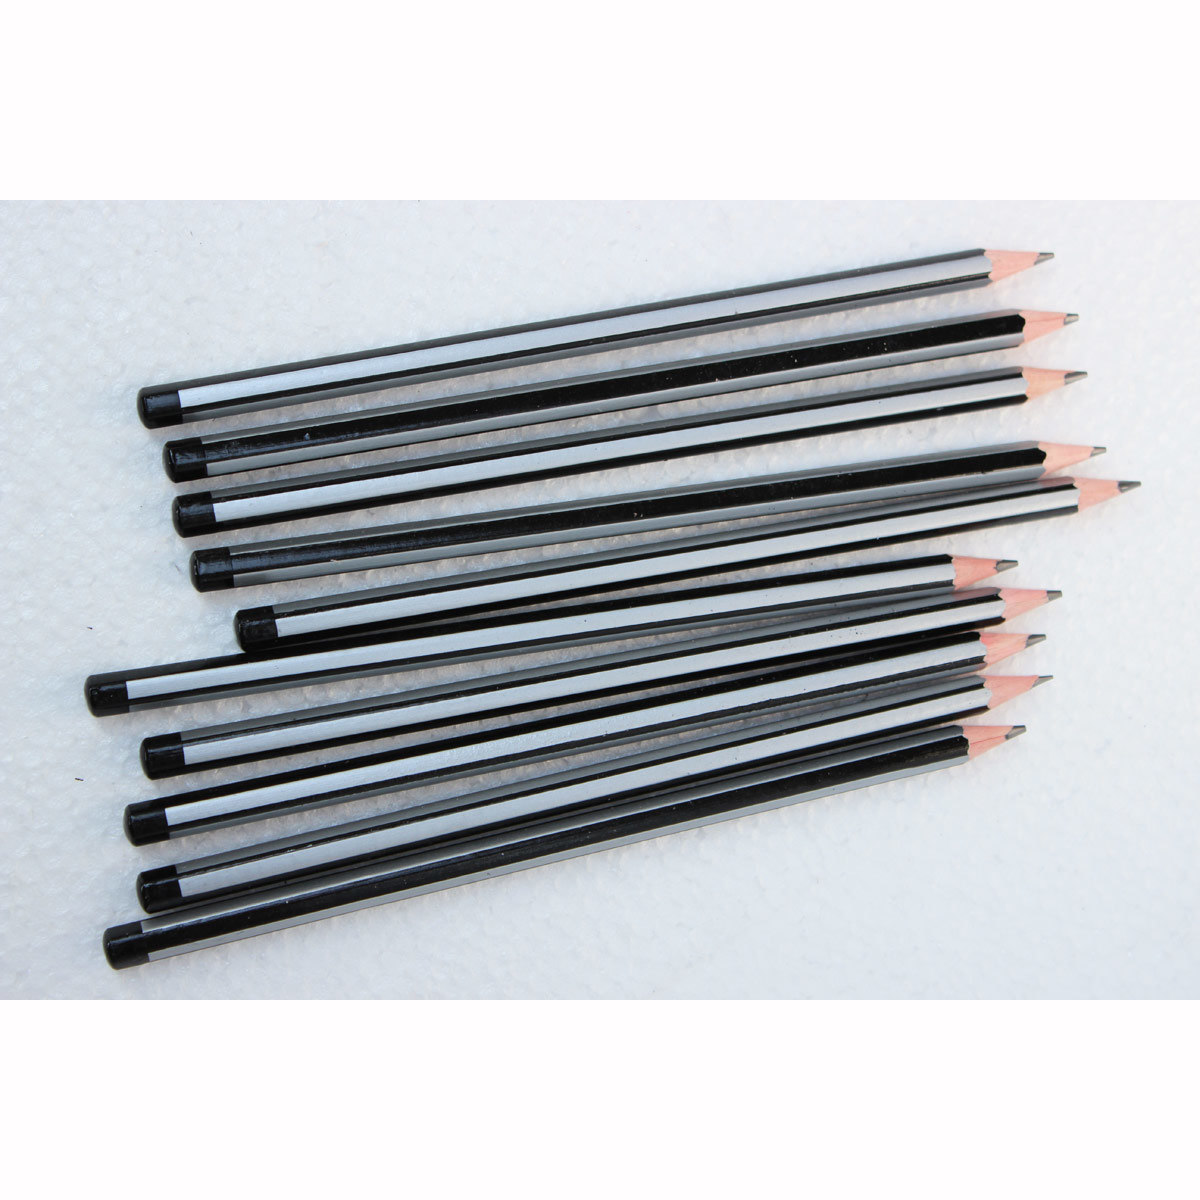 China high quality drawing pencils black silver stripe pencils hb